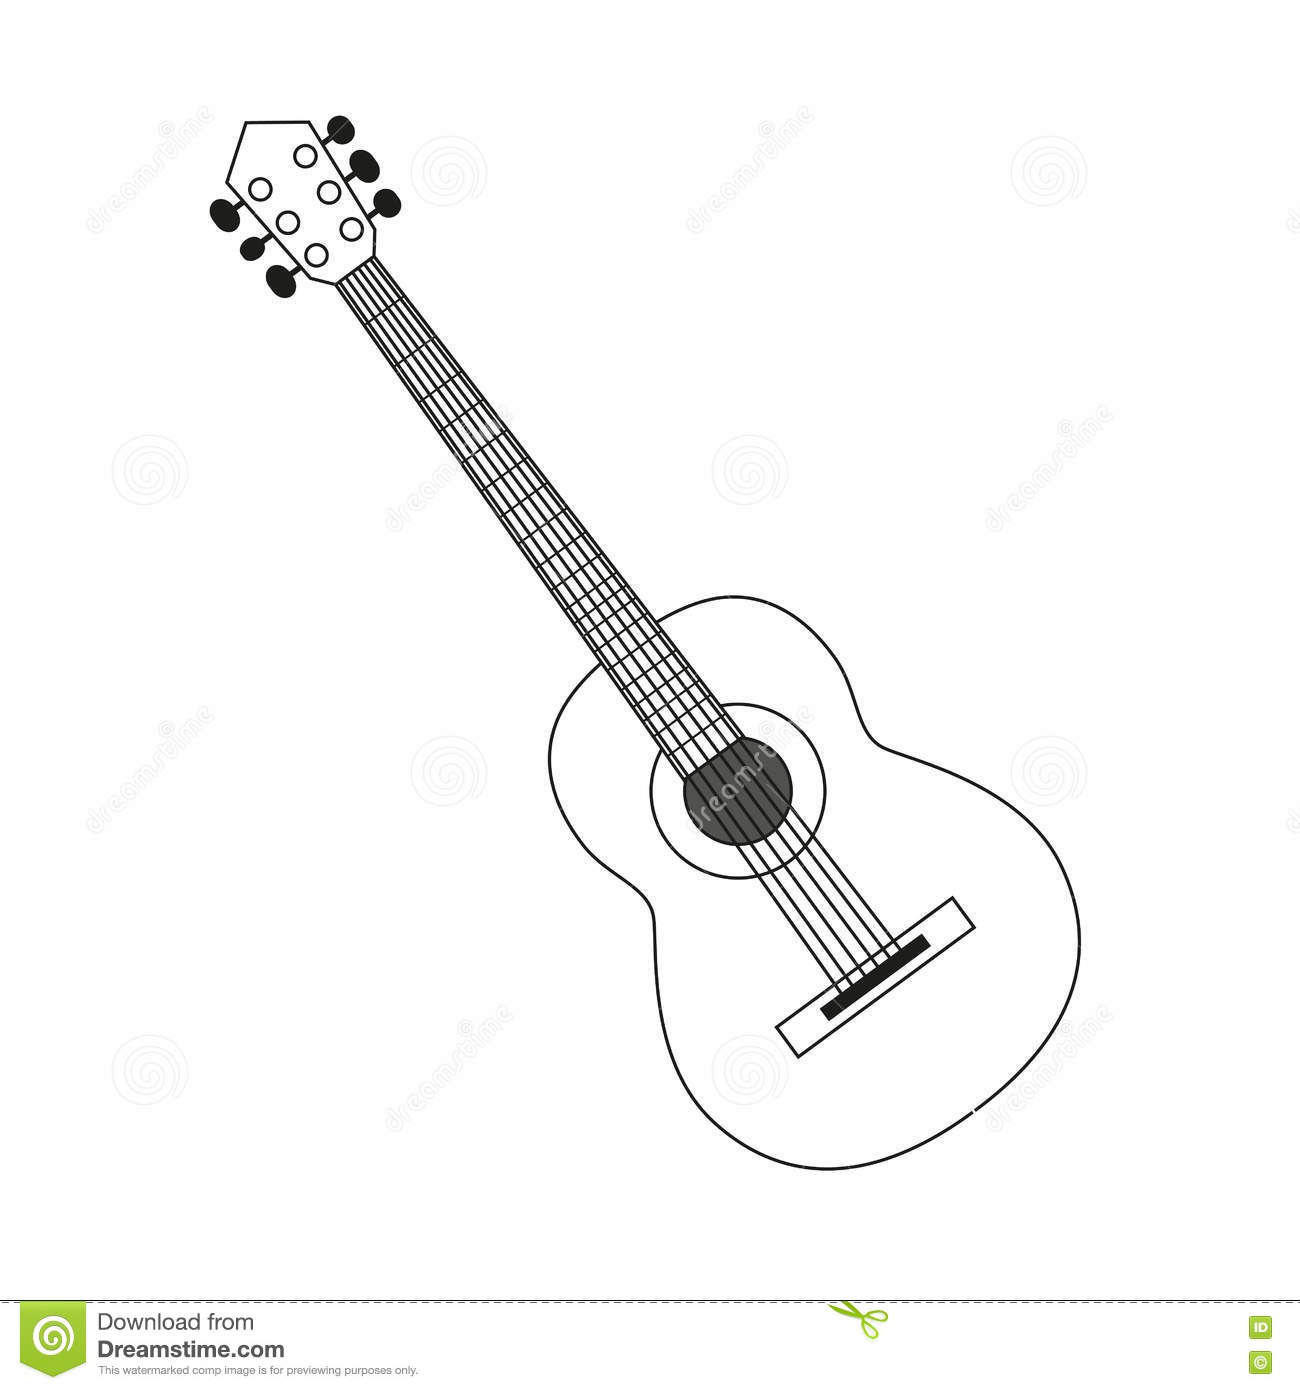 Icon Of Acoustic Guitar Icon White Contour On Black Of